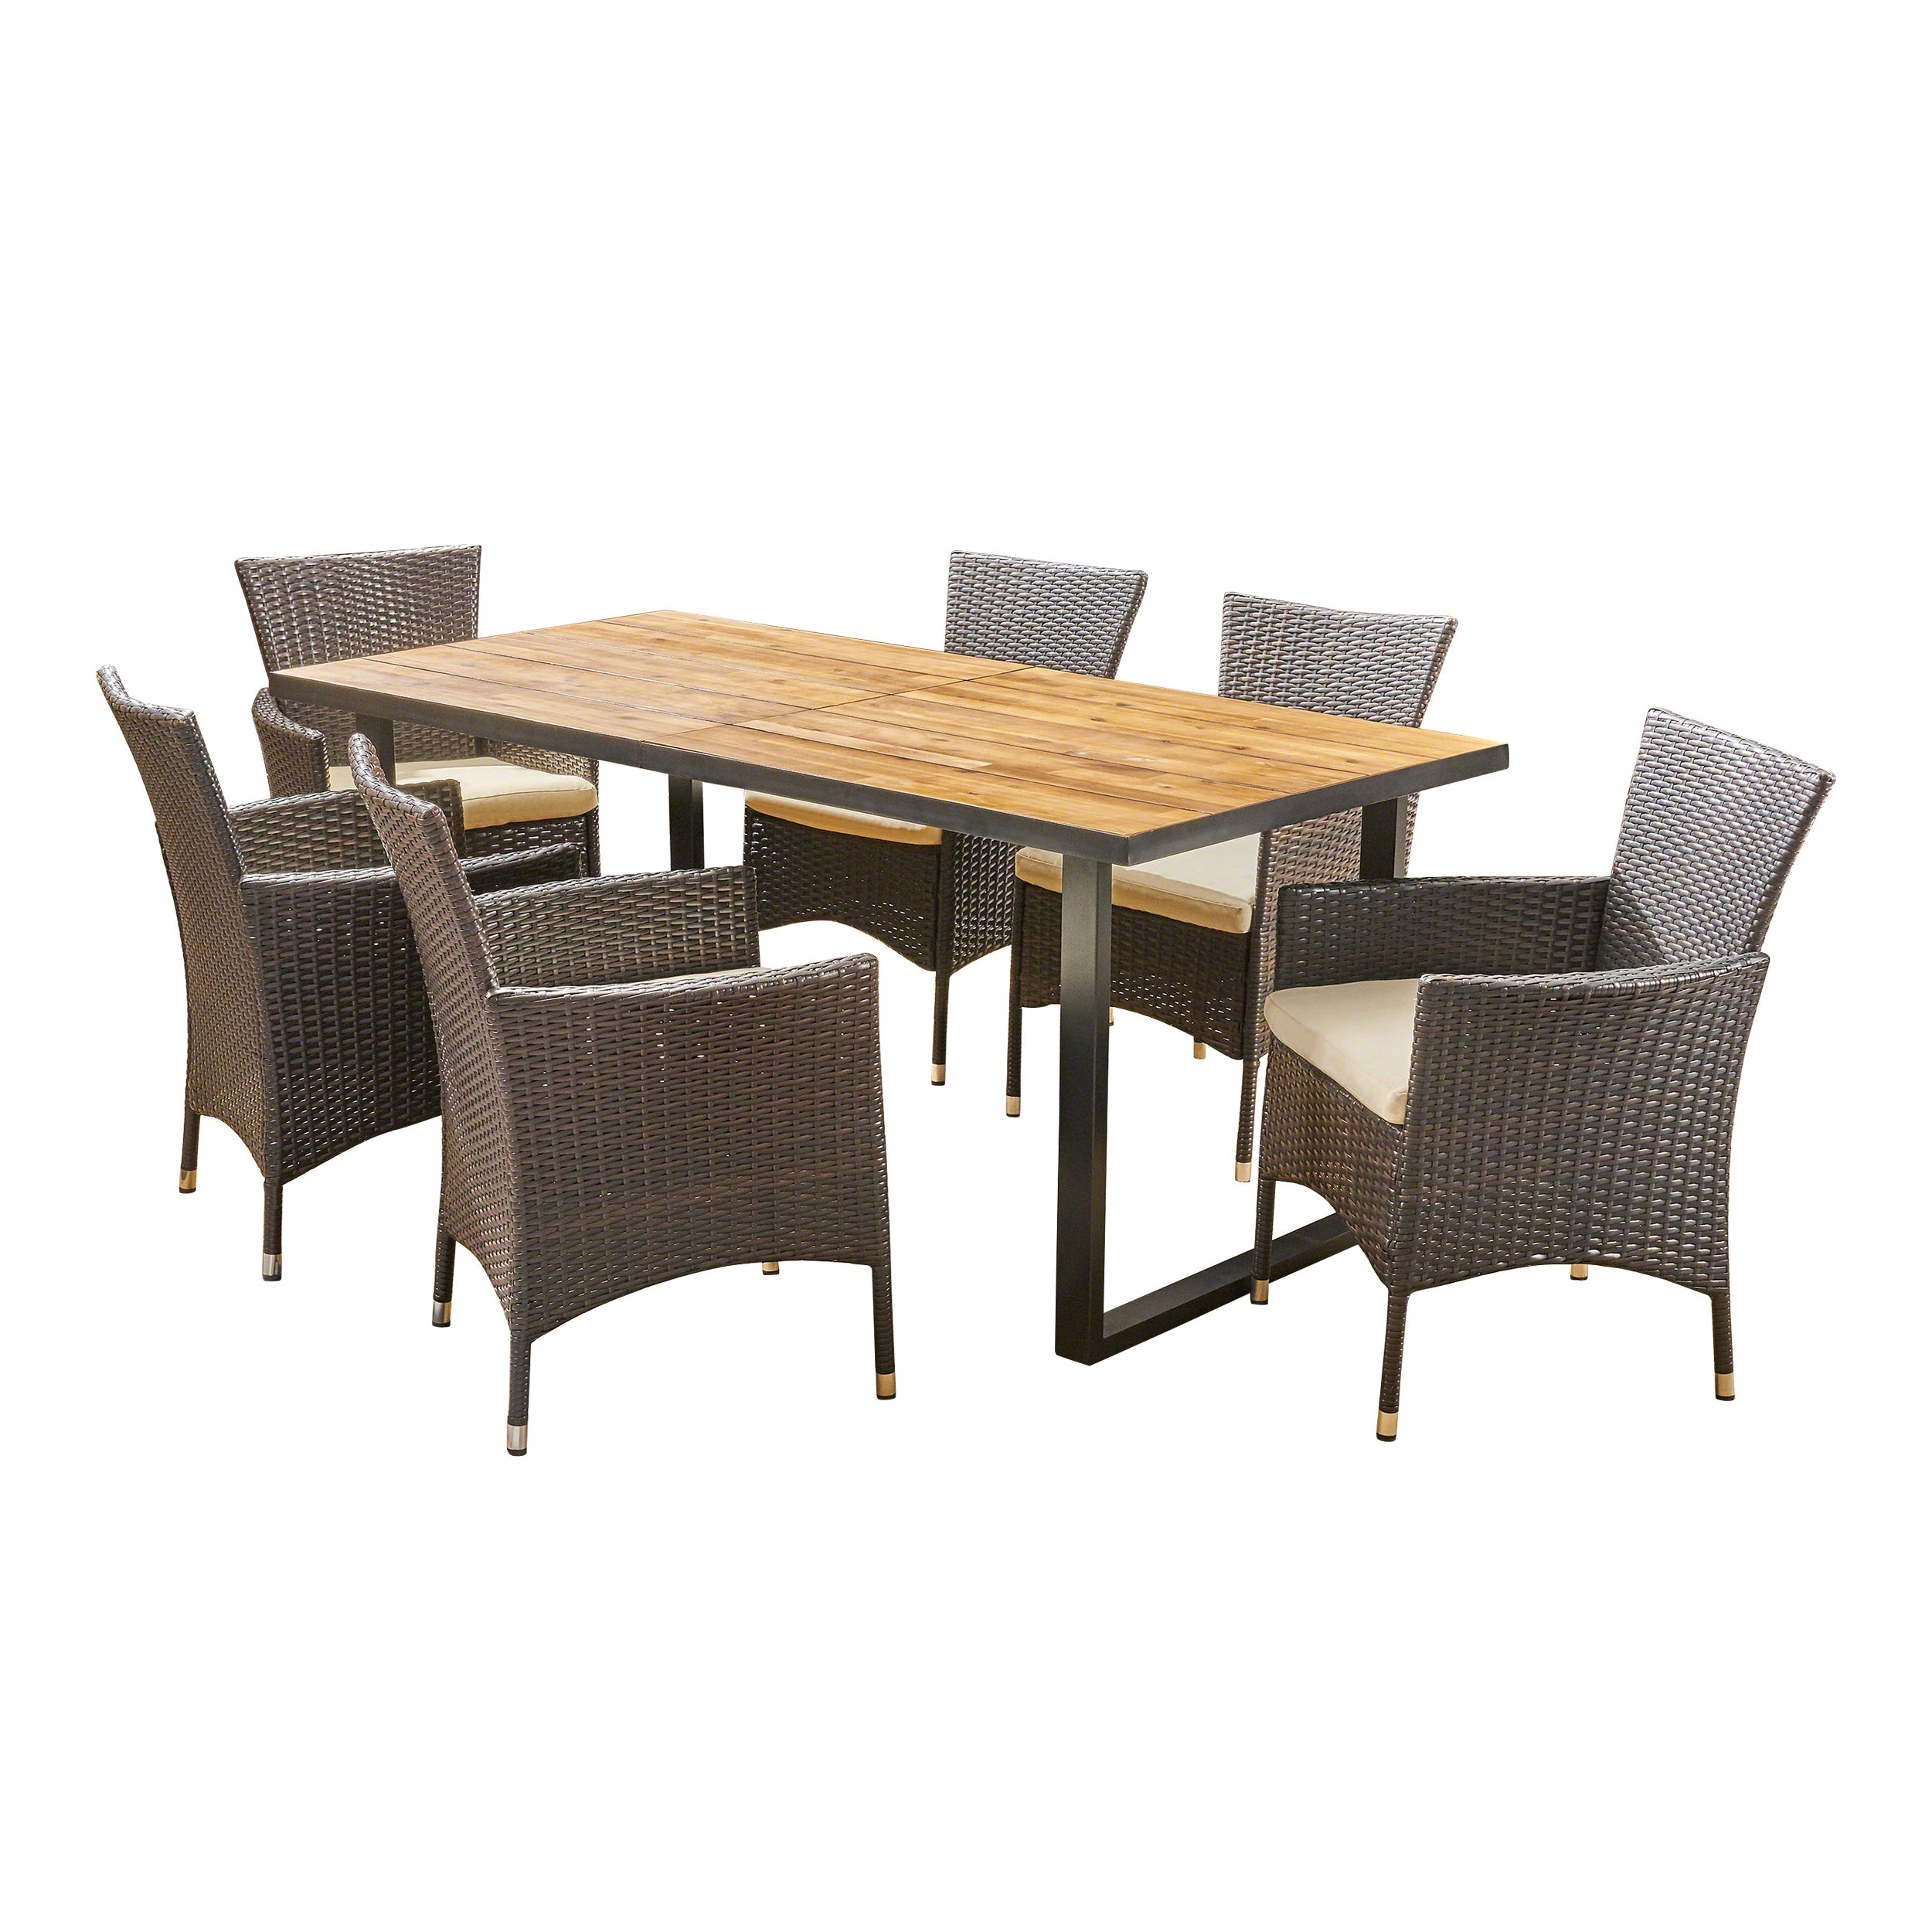 Acosta Outdoor 6 Seater Rectangular Acacia Wood and Wicker Dining Set Teak with Black and Multi Brown with Beige Default Title